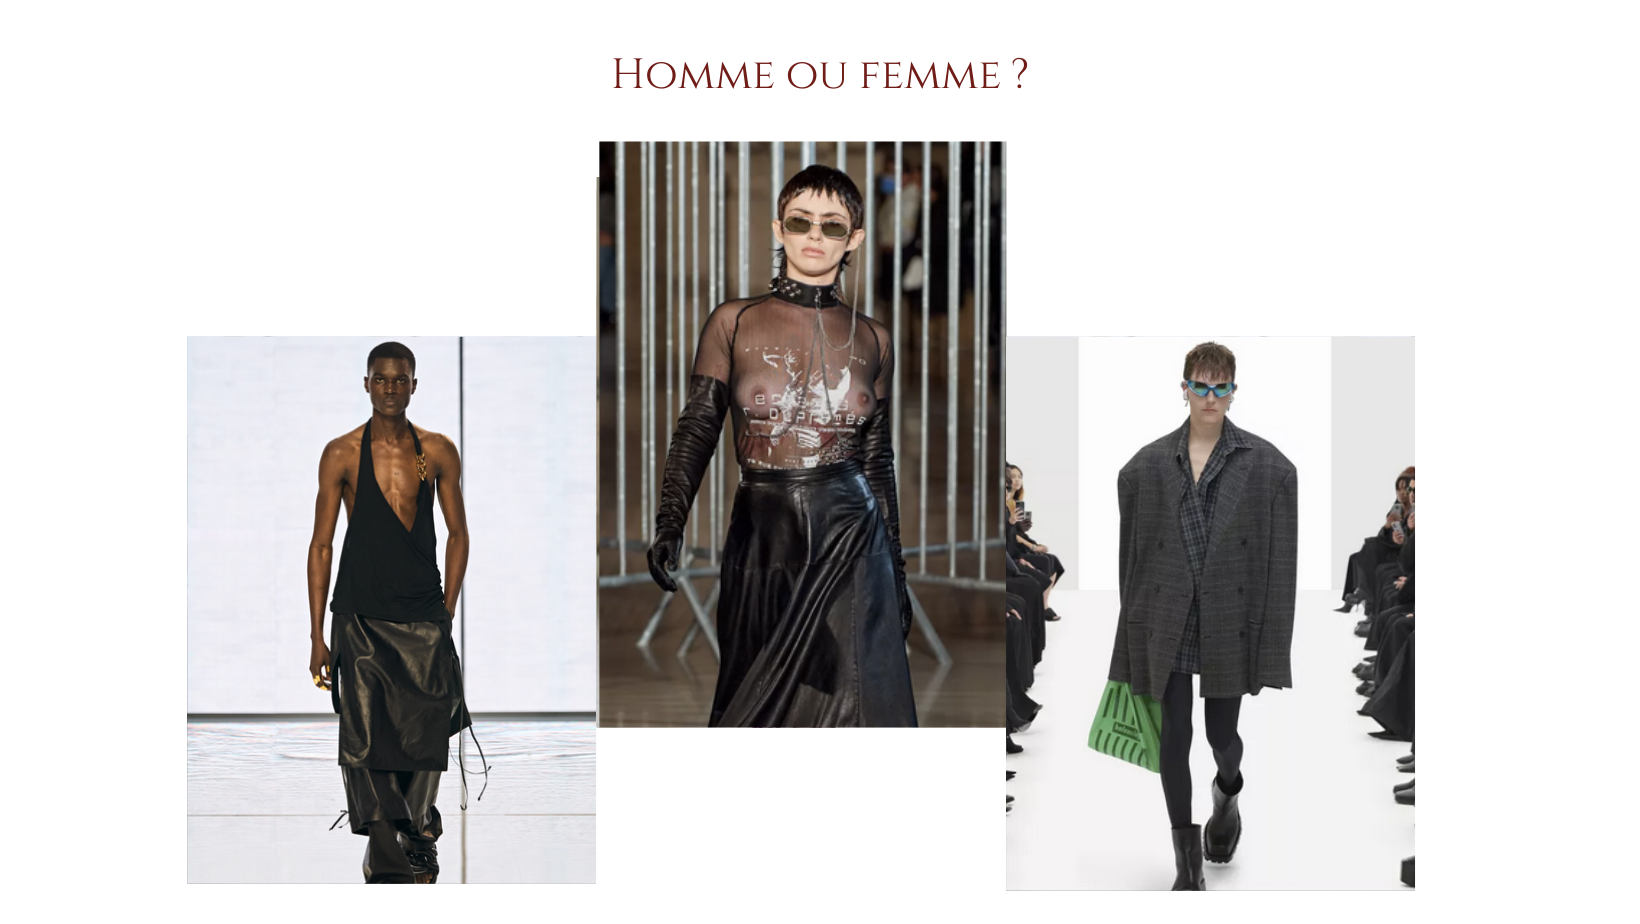 hommeoufemme